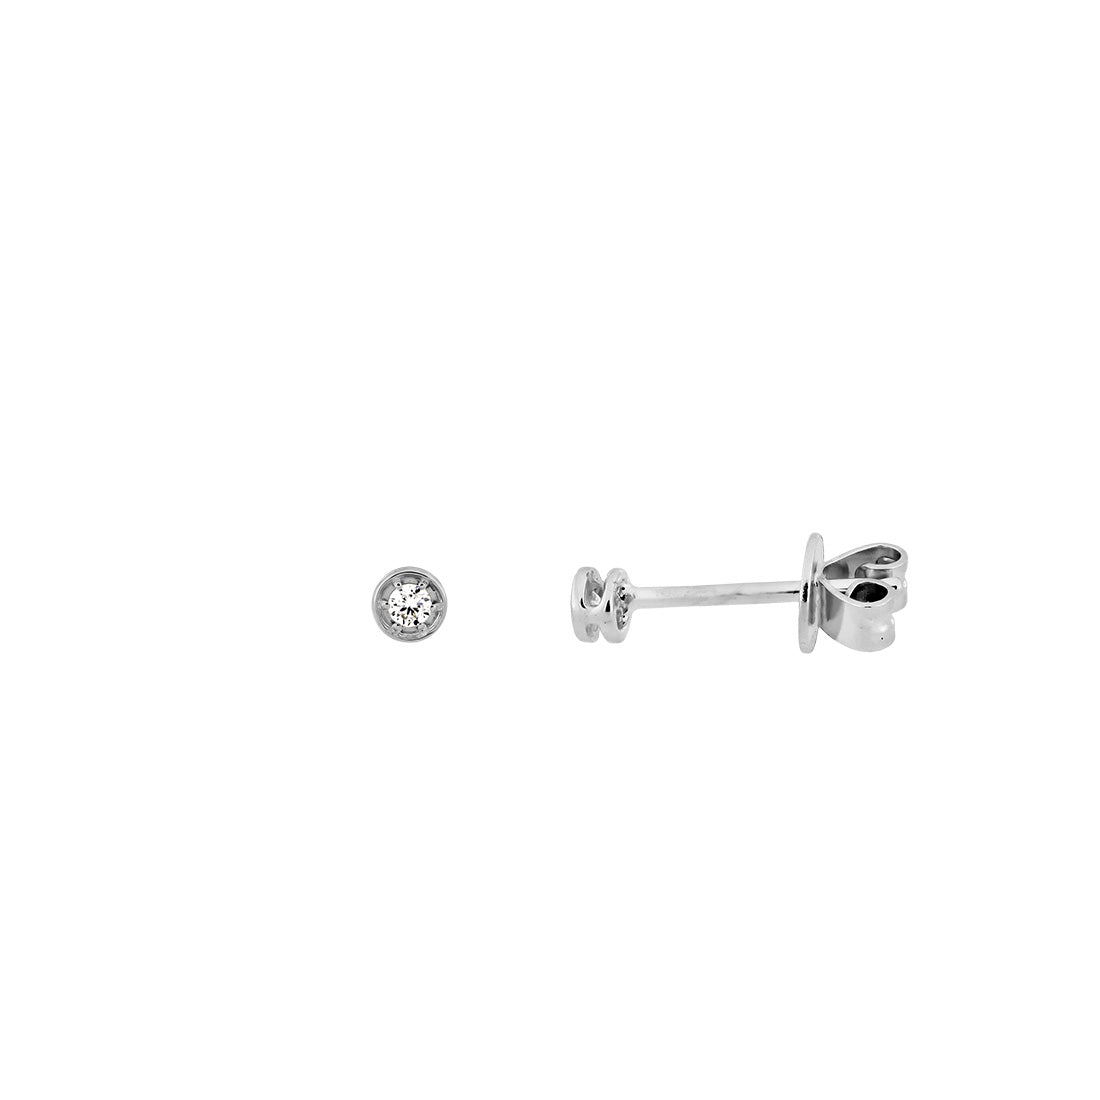 9ct White Gold & Diamond Studs